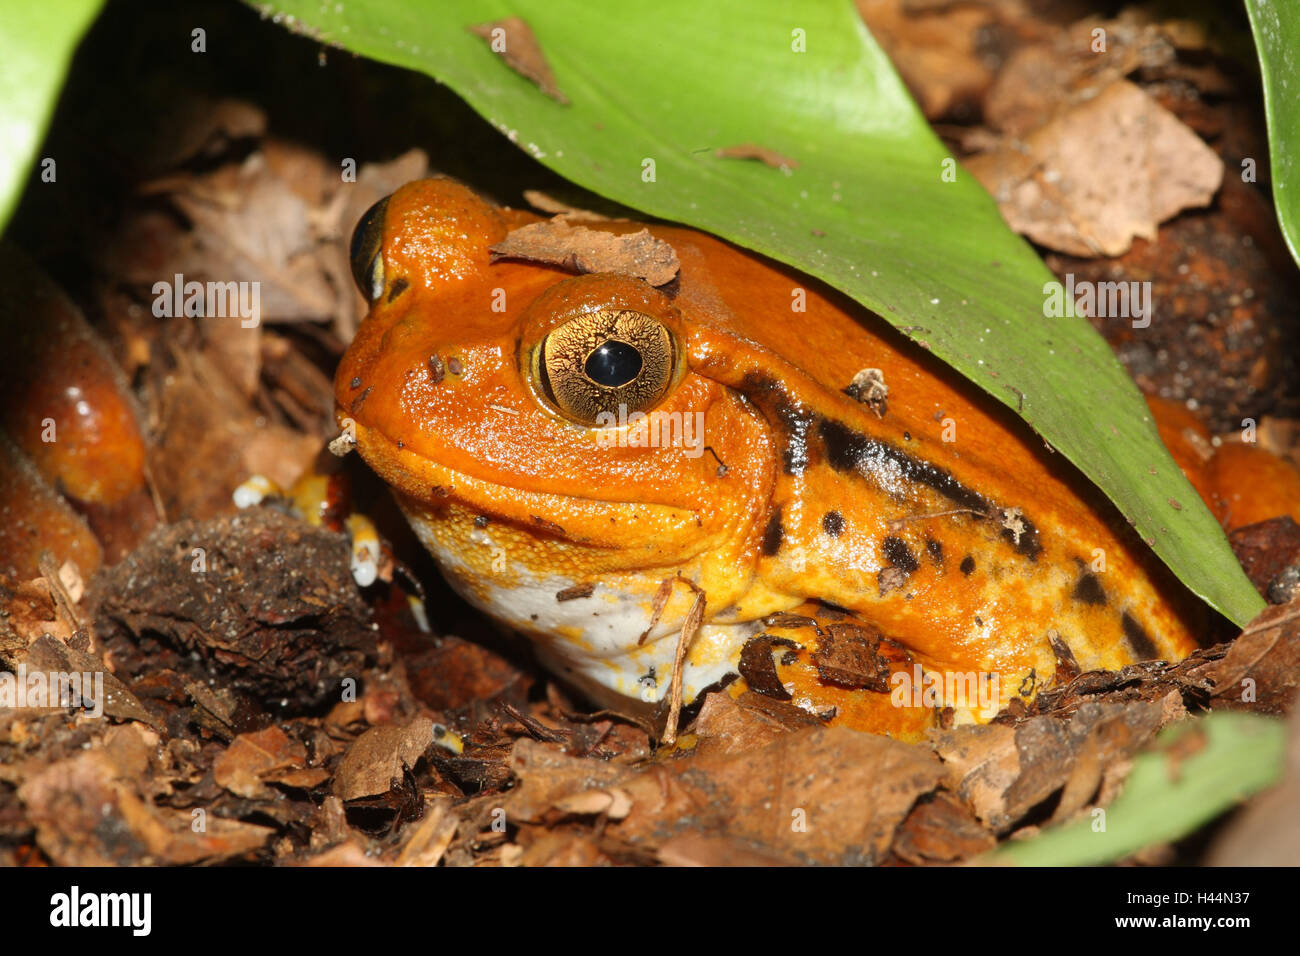 Grenouille tomate sud, Dyscophus guineti, Banque D'Images